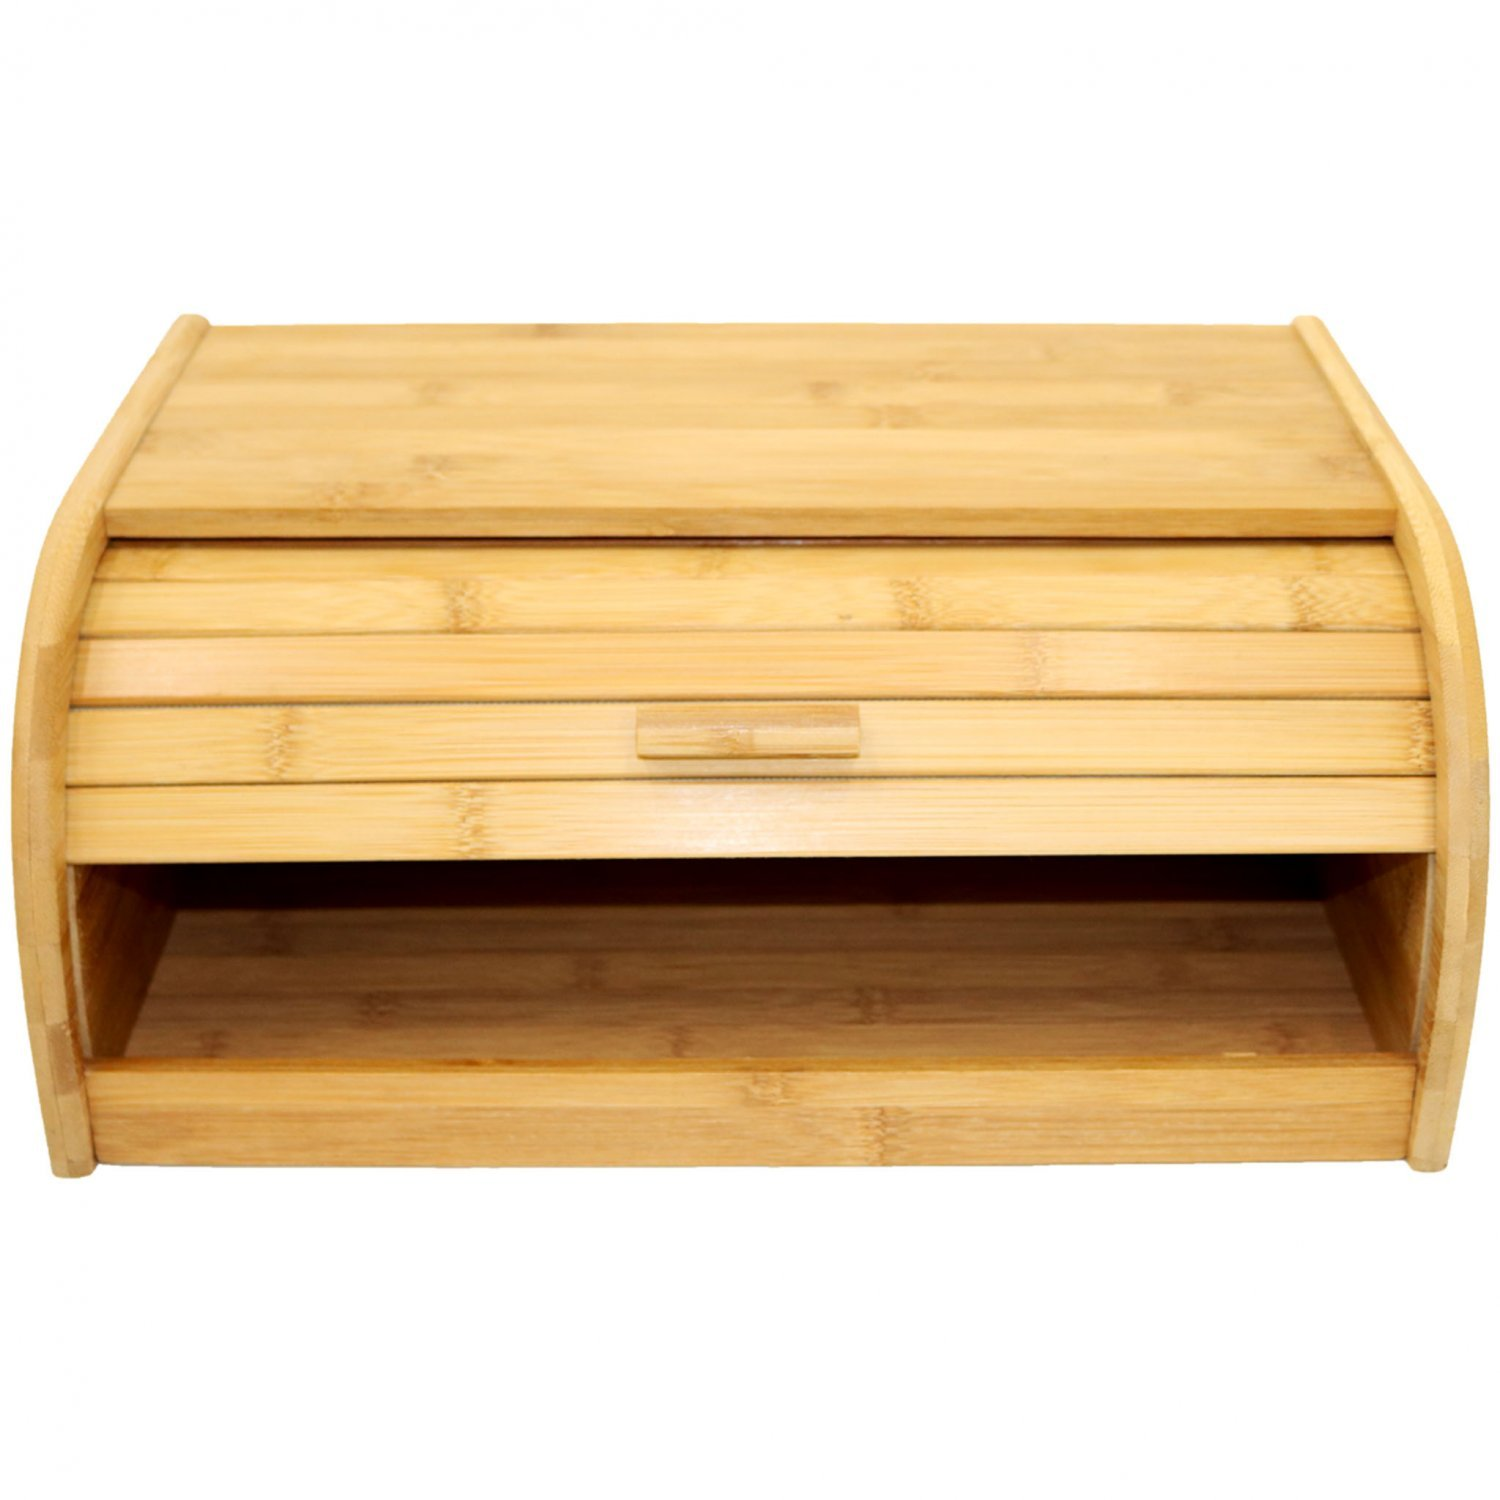 Single Layer Roll Top Bamboo Wooden Bread Bin Kitchen Storage